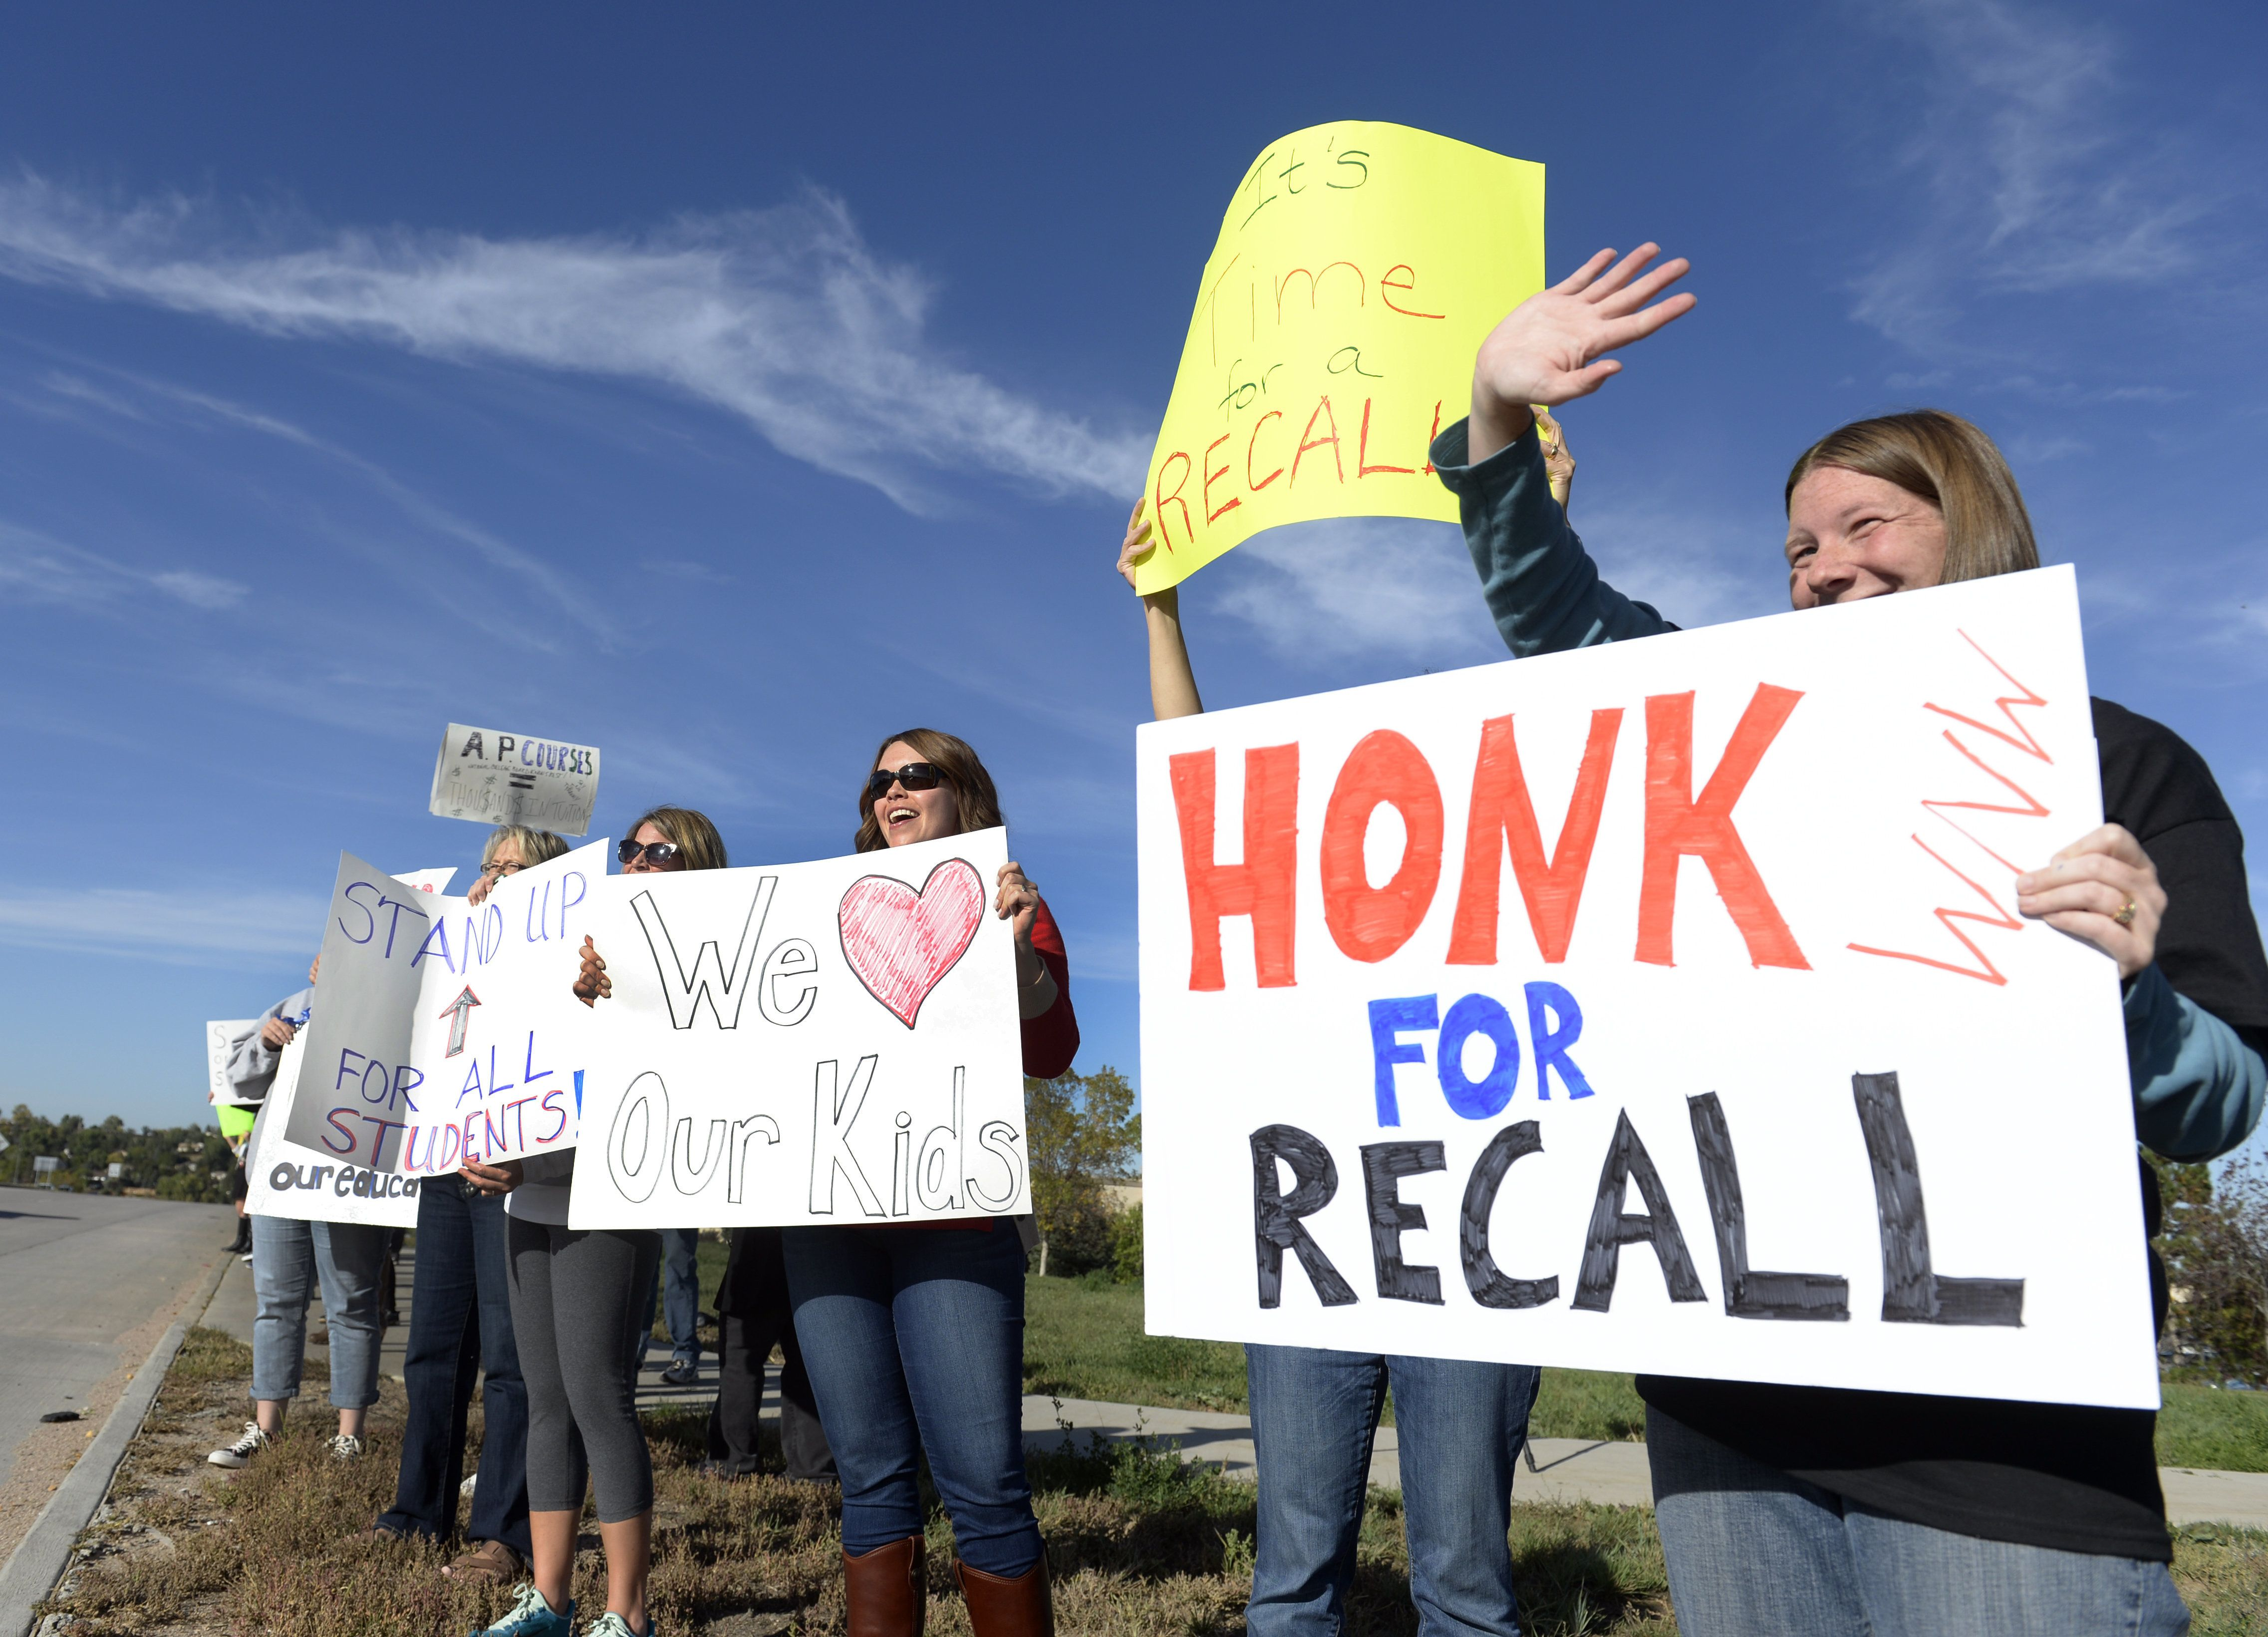 LITTLETON, CO - OCTOBER 3: Ann Hampton, right, stands with fellow students, teachers, and parents from both Jefferson County and Douglas County as they join an event dubbed 'Boots on the Boulevard' and stand on the corner of S. Wadsworth Blvd. and W. Chatfield Ave. in Littleton to in protest against the Jefferson County school board. (Kathryn Scott Osler/The Denver Post via Getty Images)